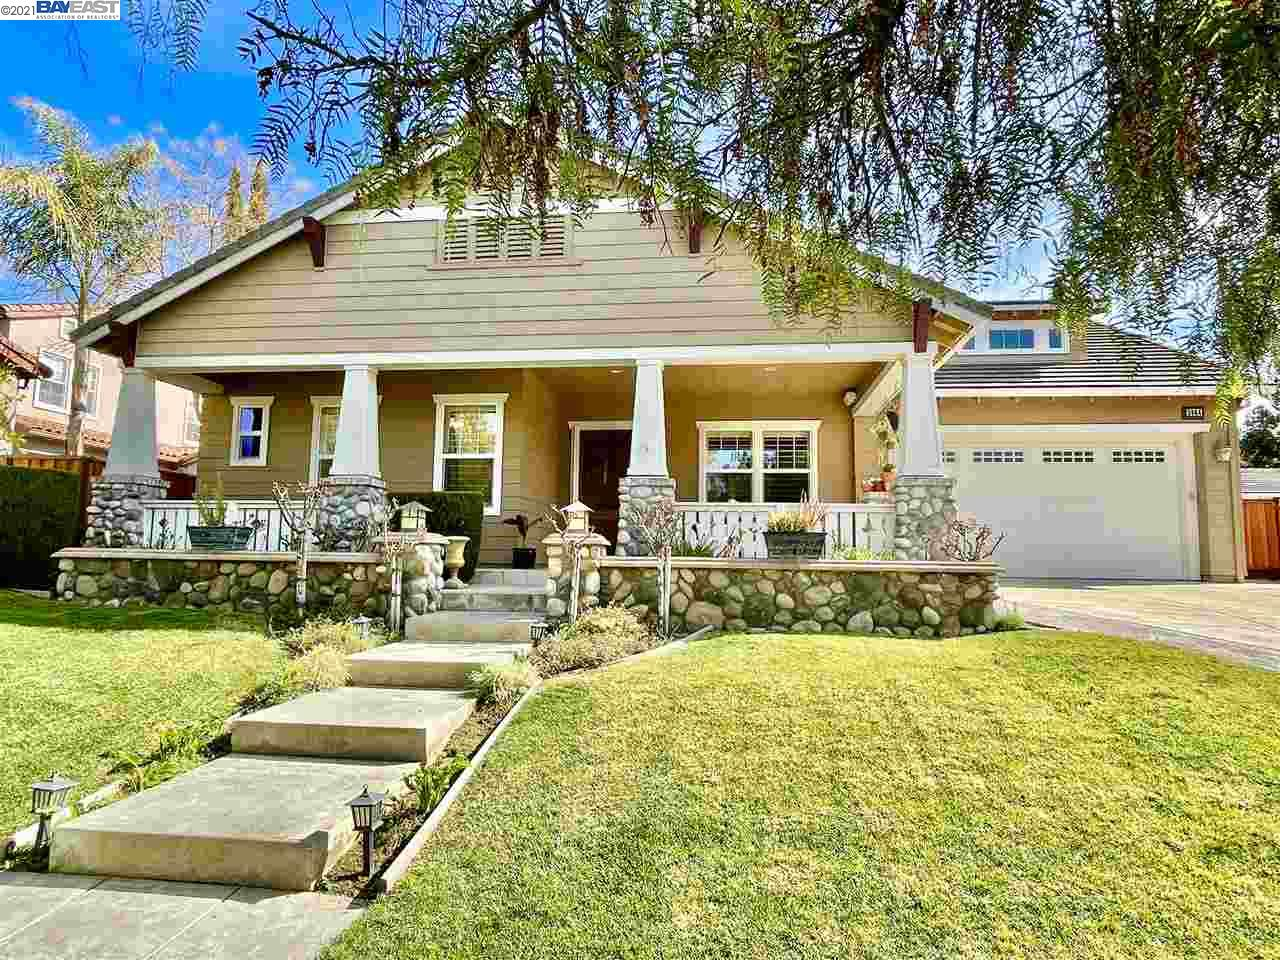 Property for sale at 3064 Talinga Dr, Livermore,  California 94550